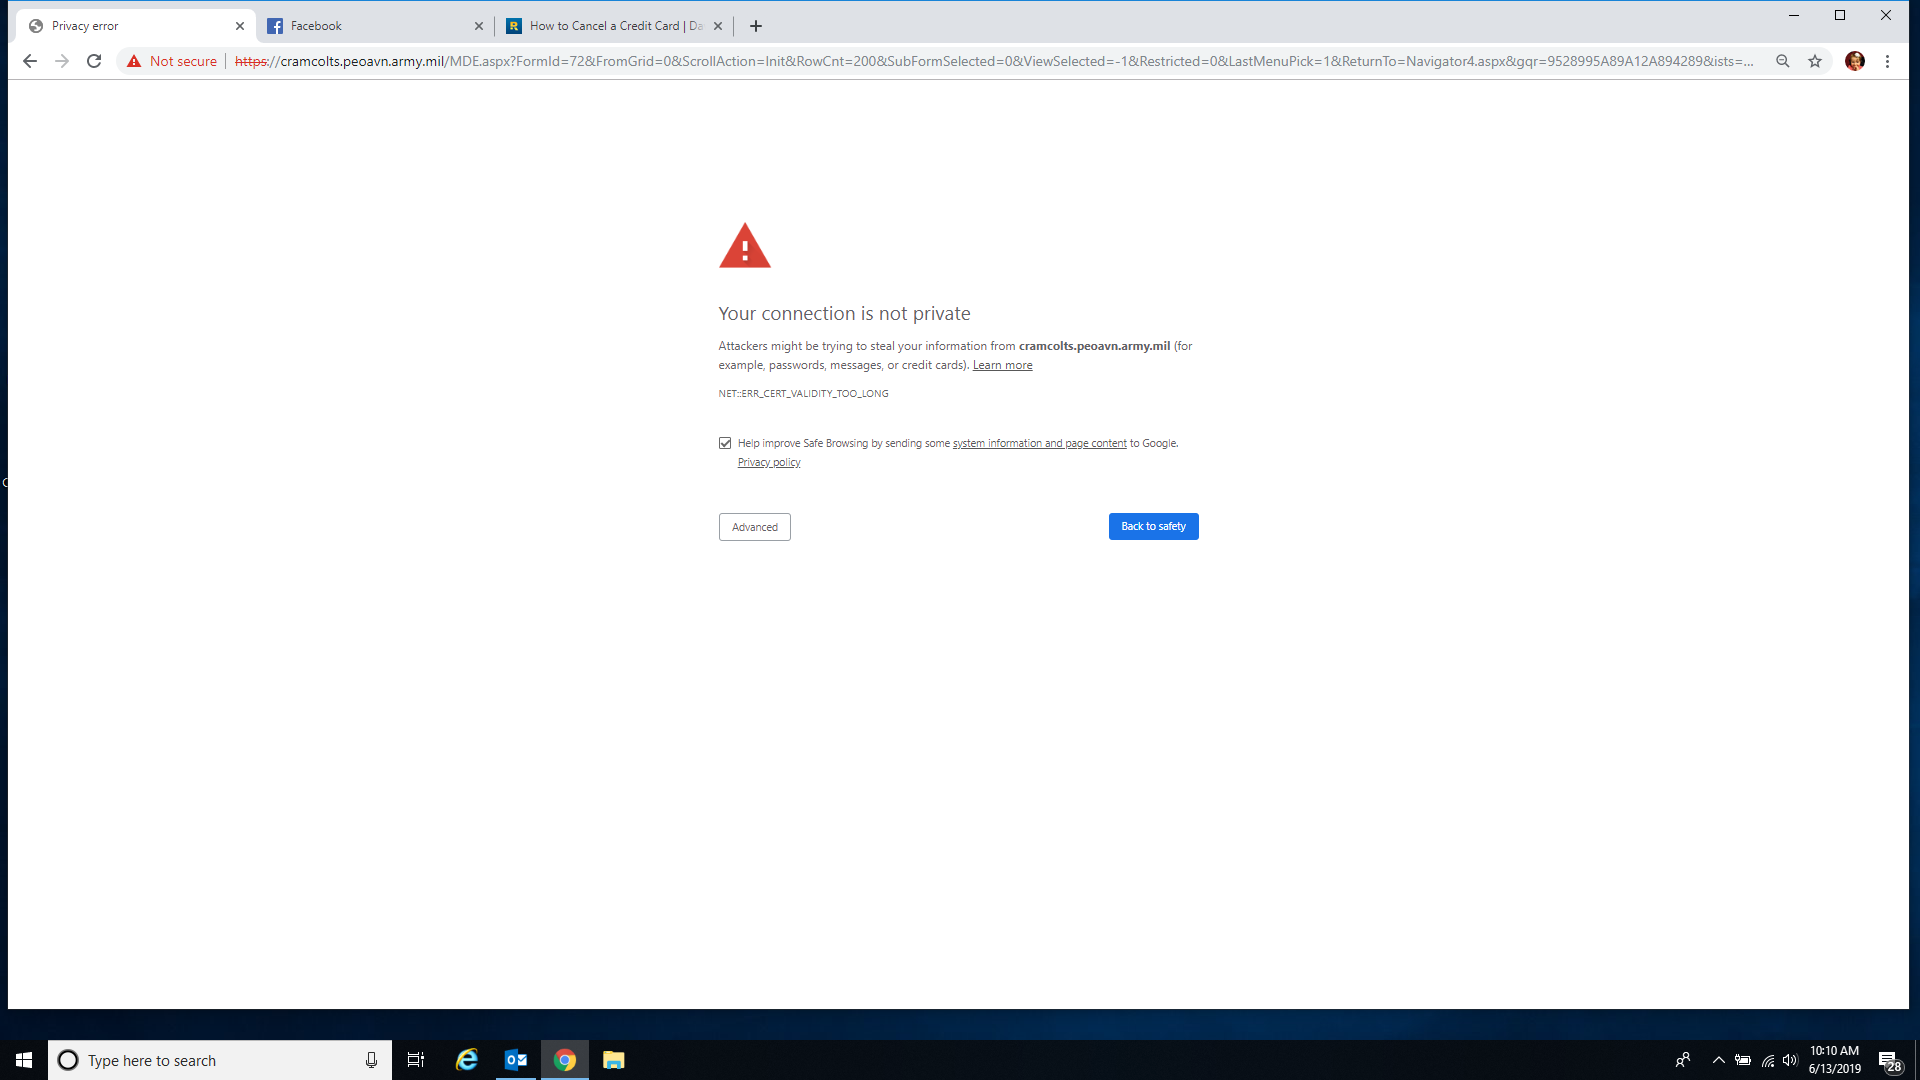 You're connection is not private. - Google Chrome Community